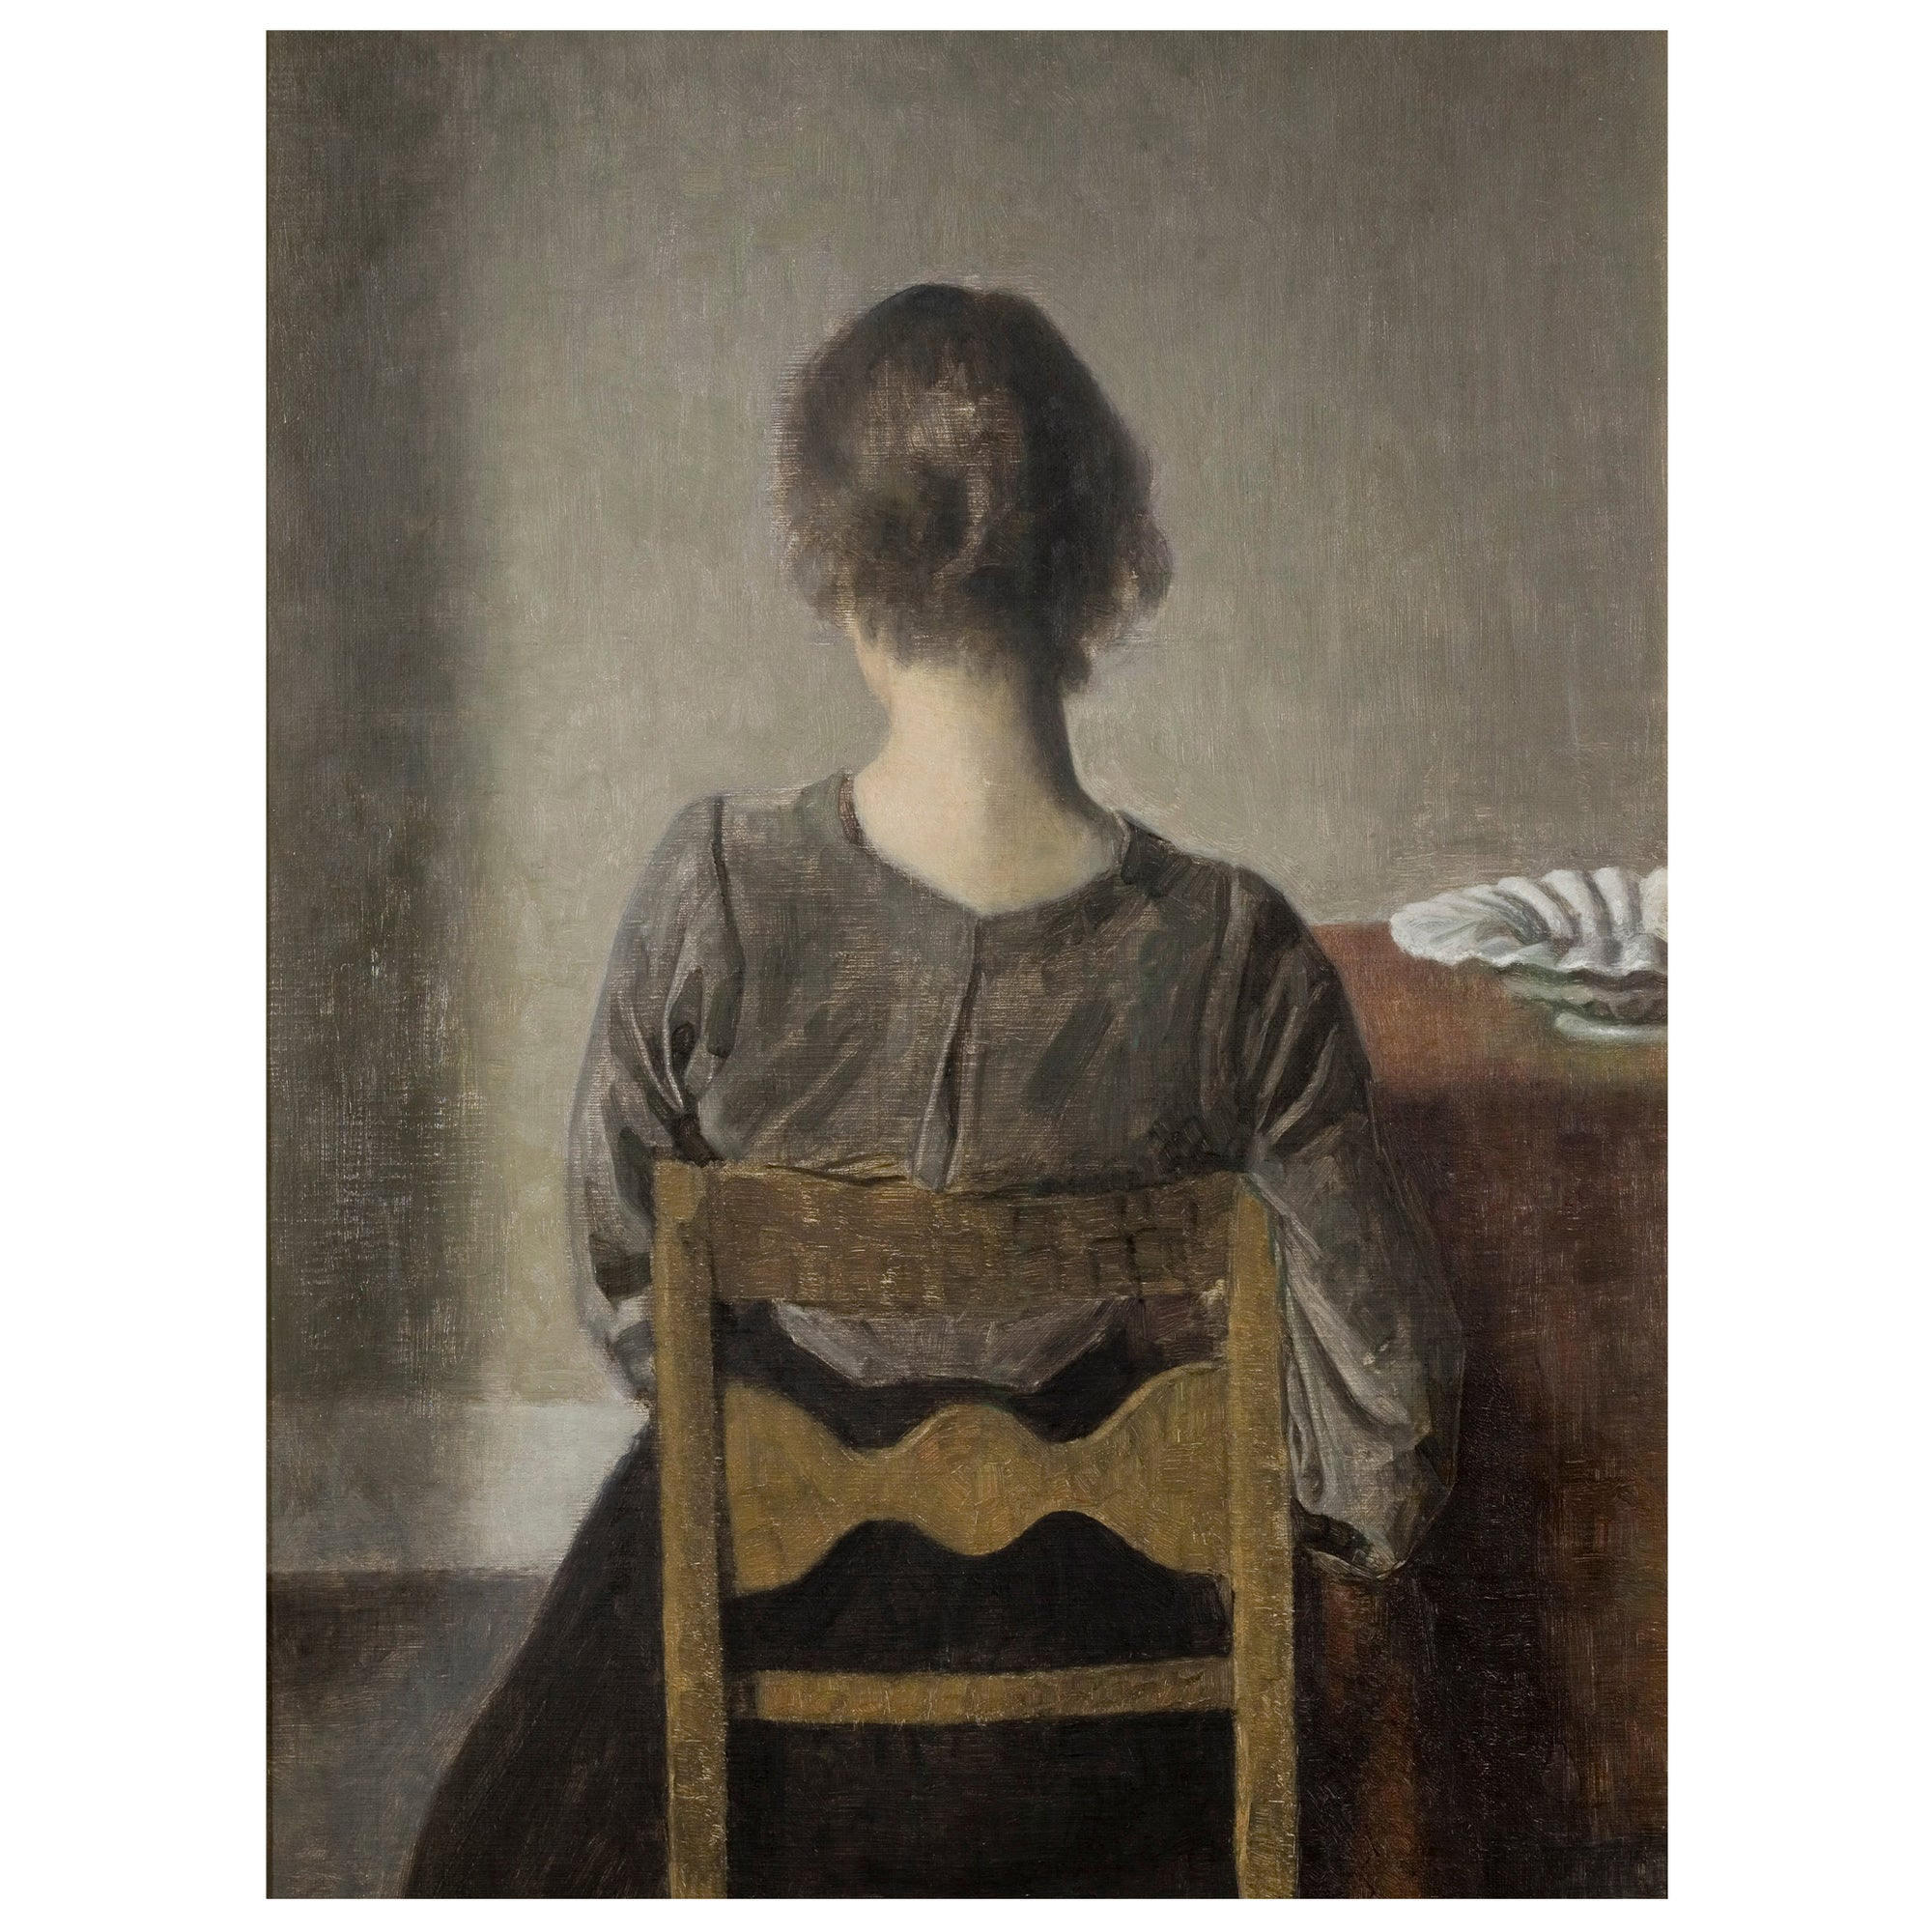 Ida girl on a chair vintage poster print